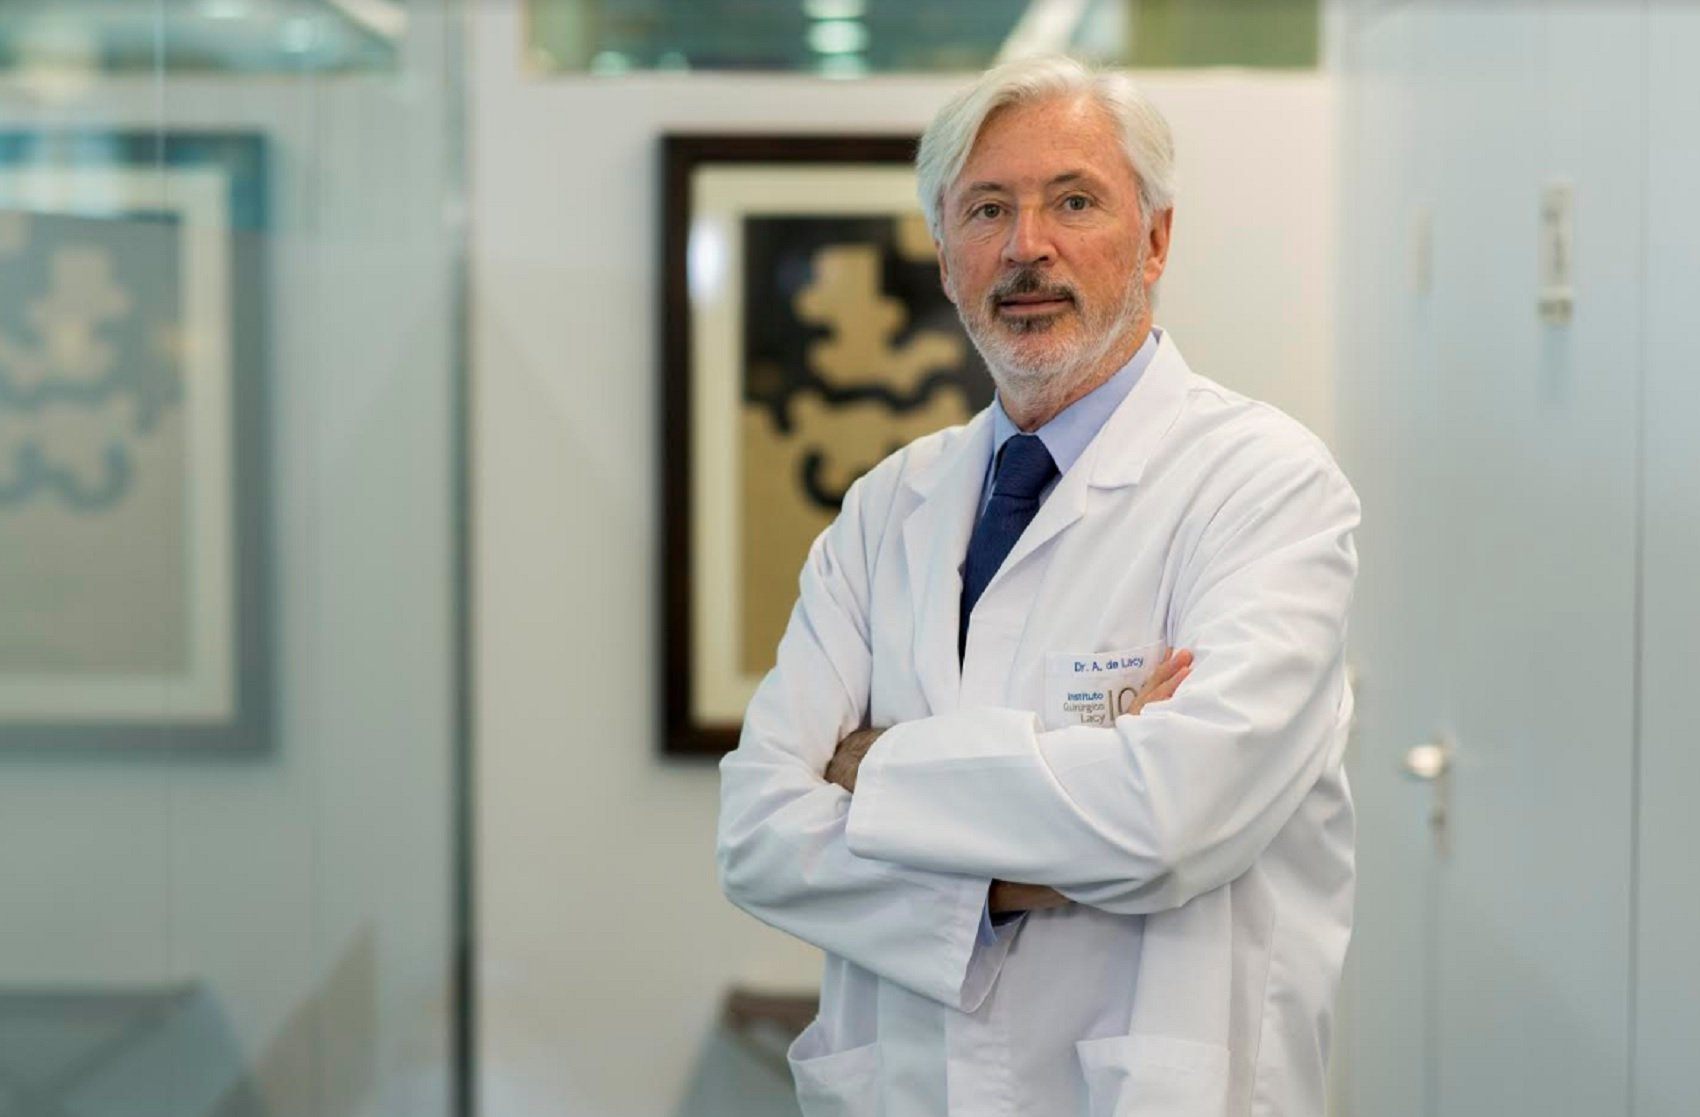 doctor de lacy quironsalud